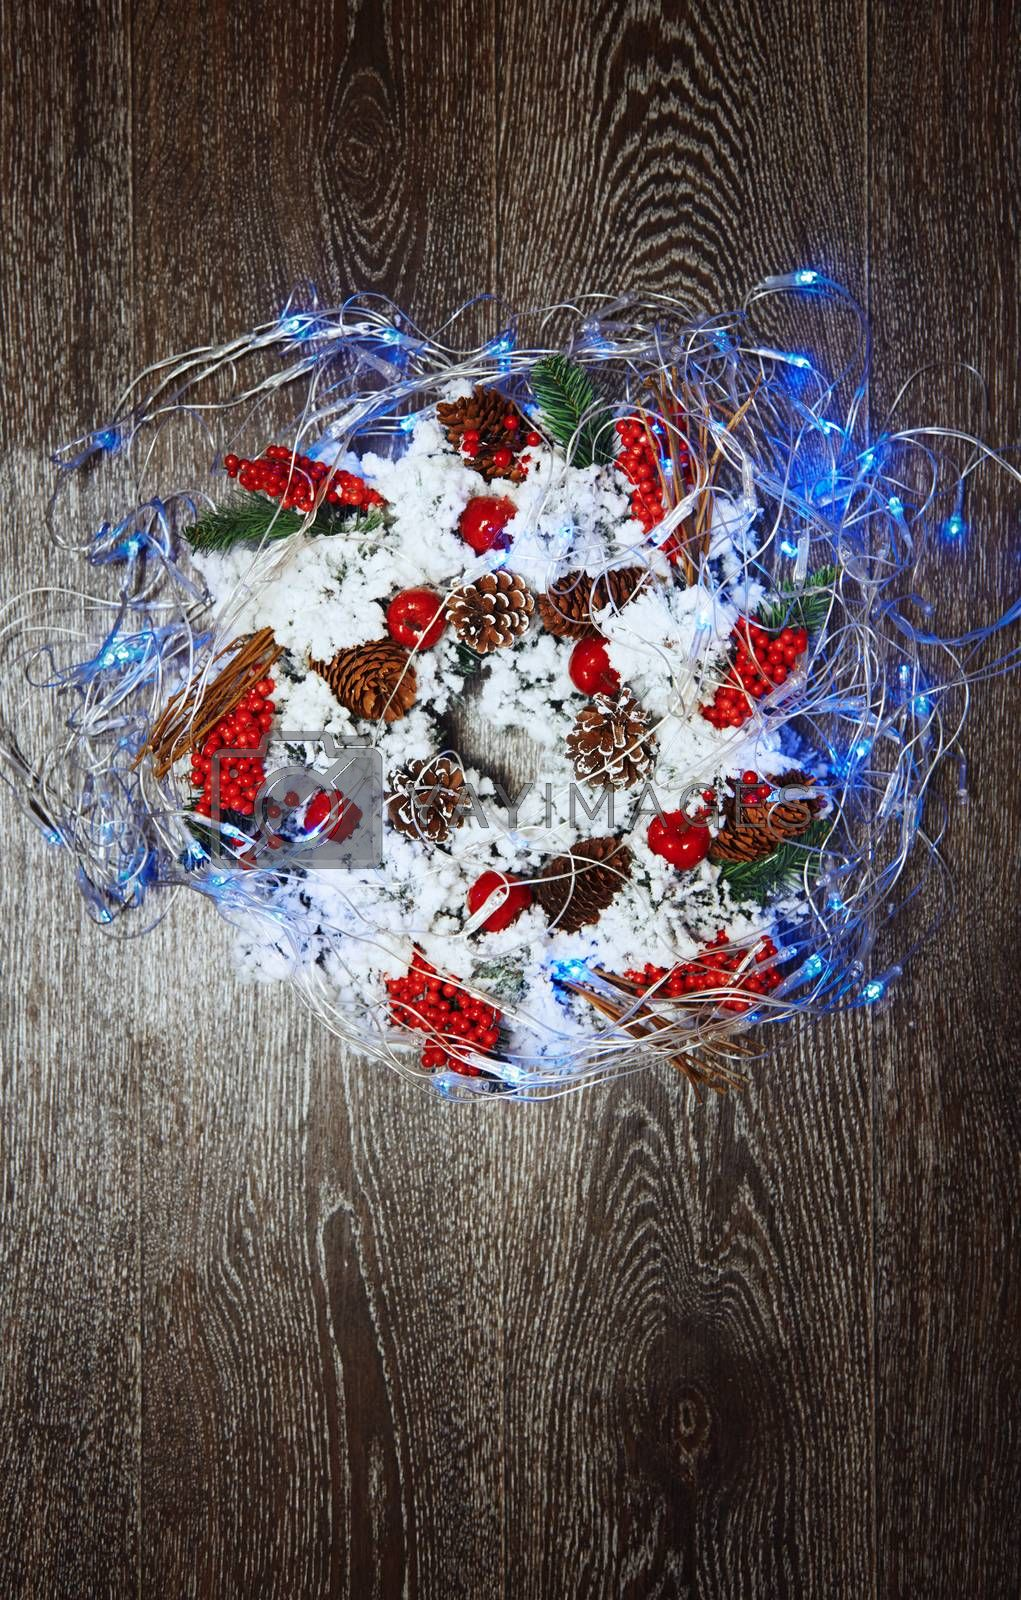 Christmas wreath and light by Novic